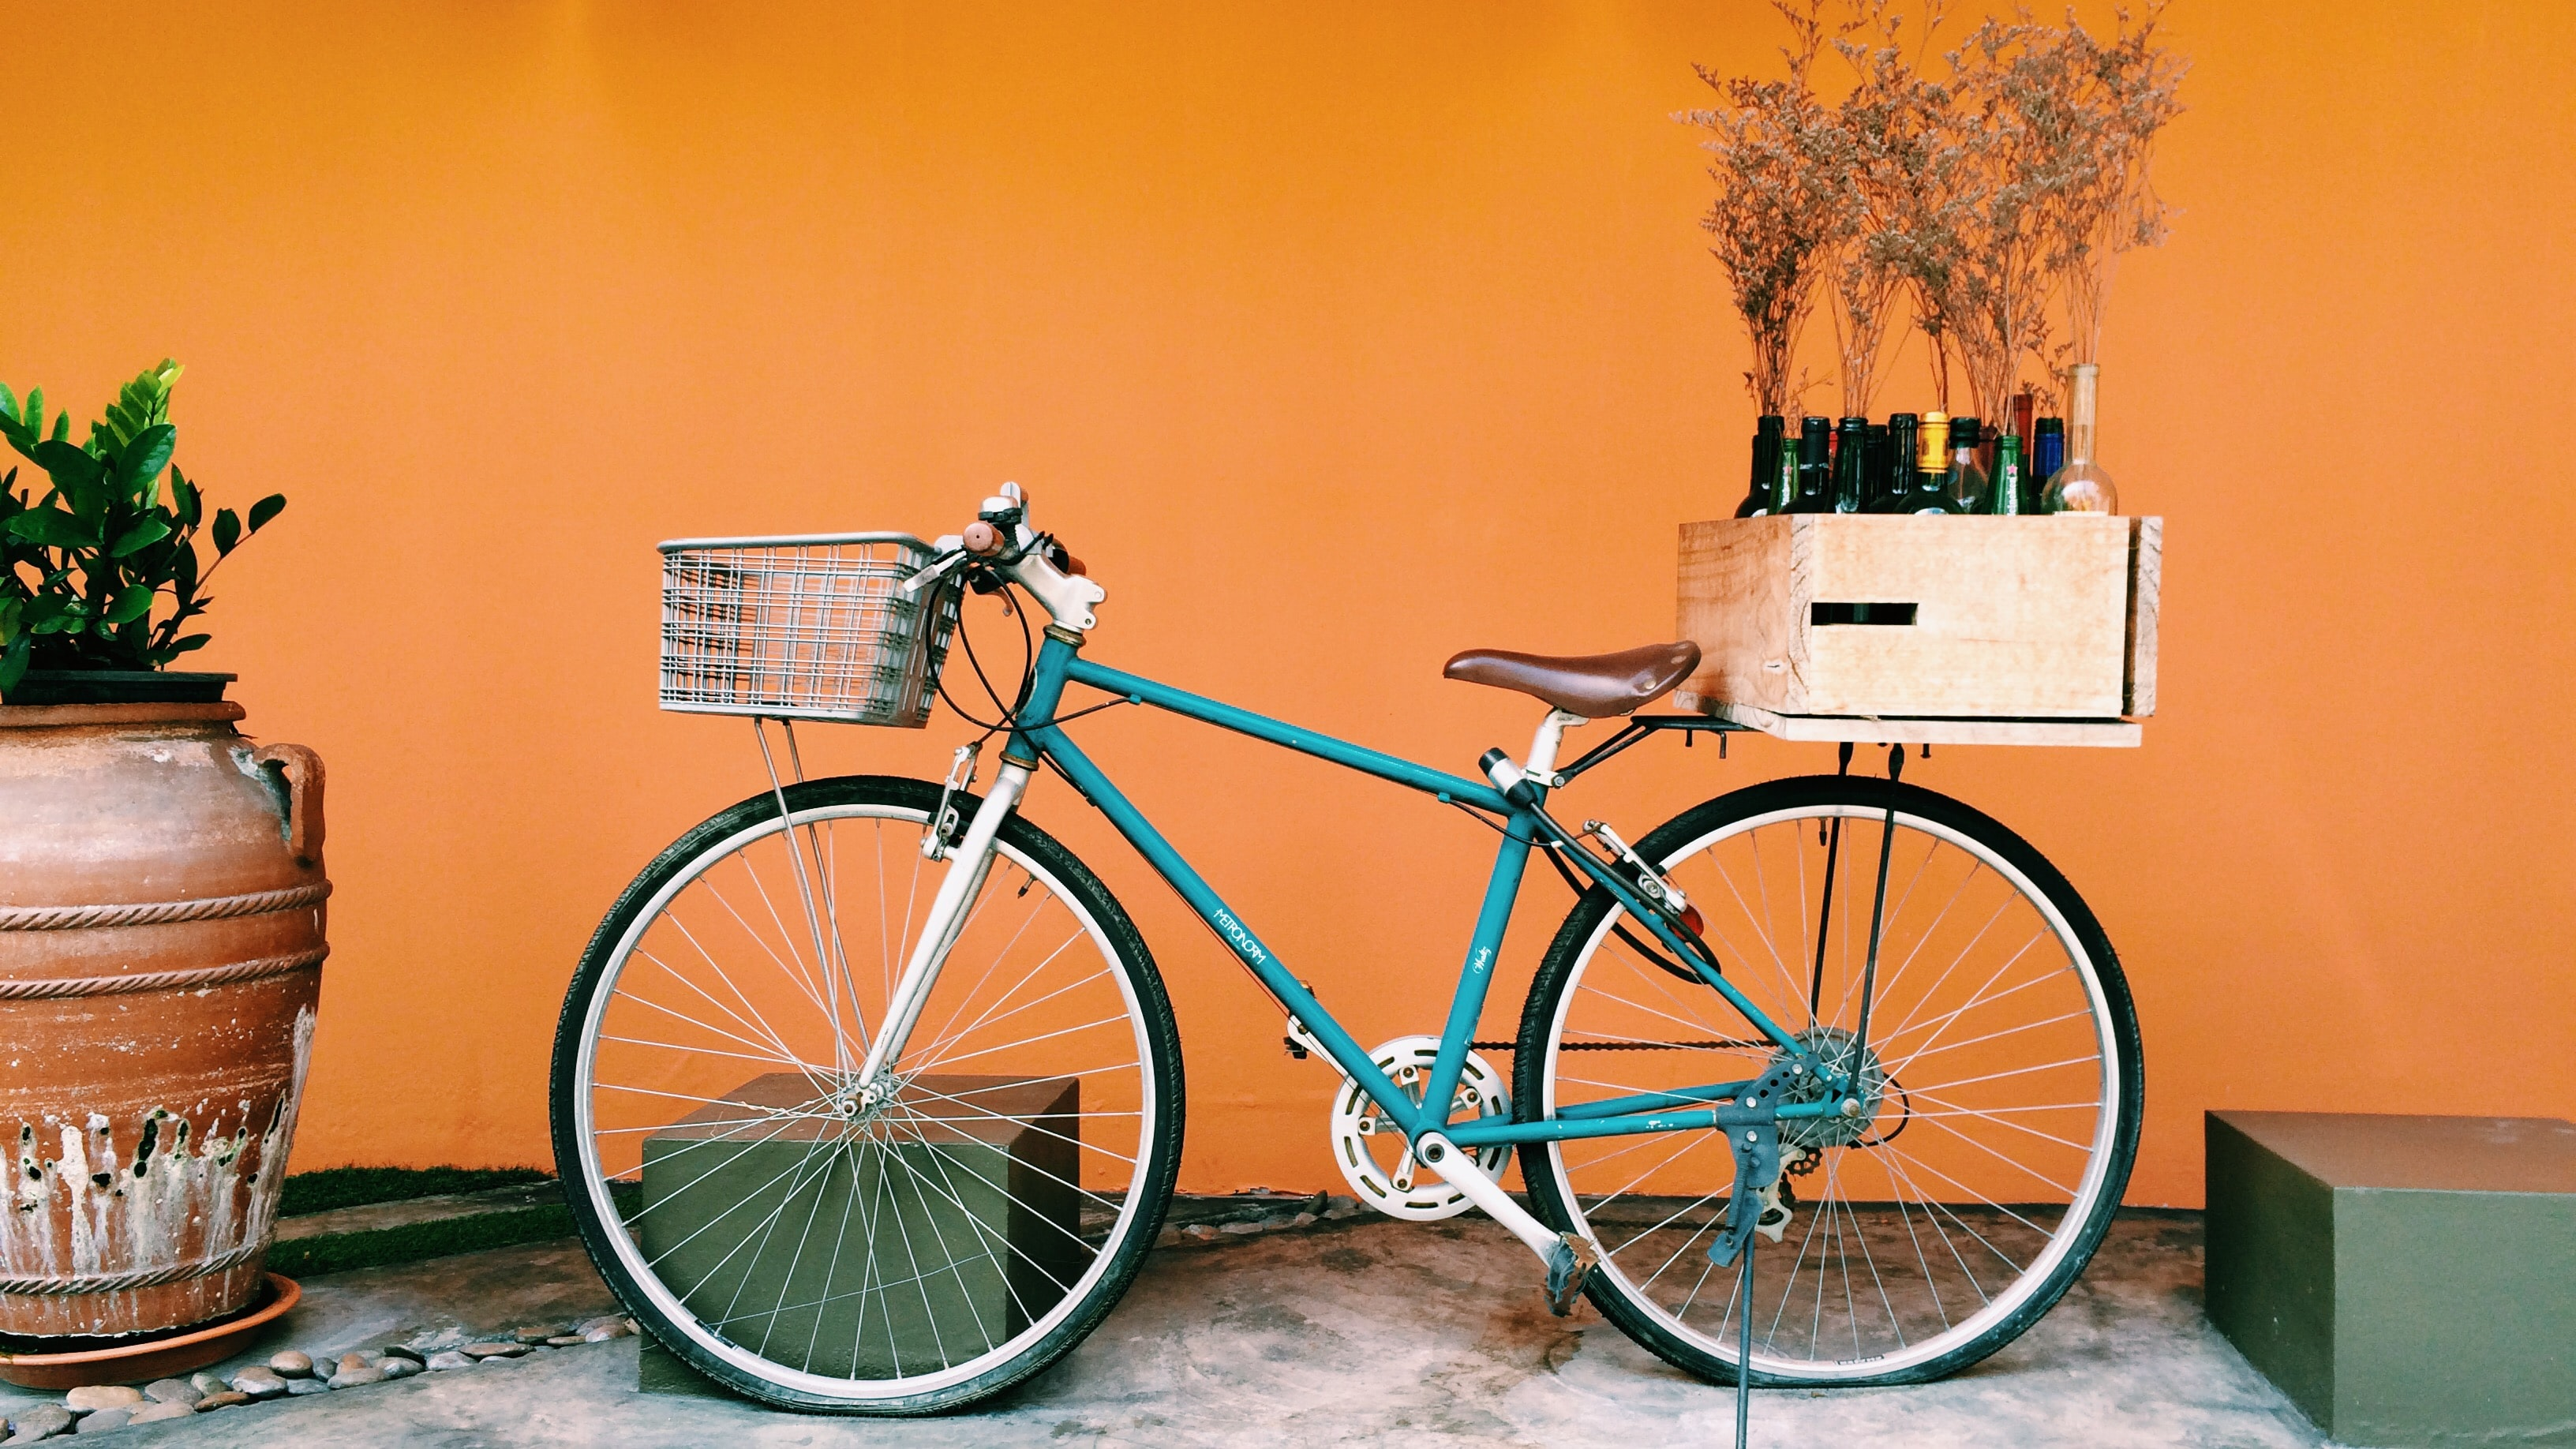 A bicycle with a crate of wine on its carrier against an orange wall